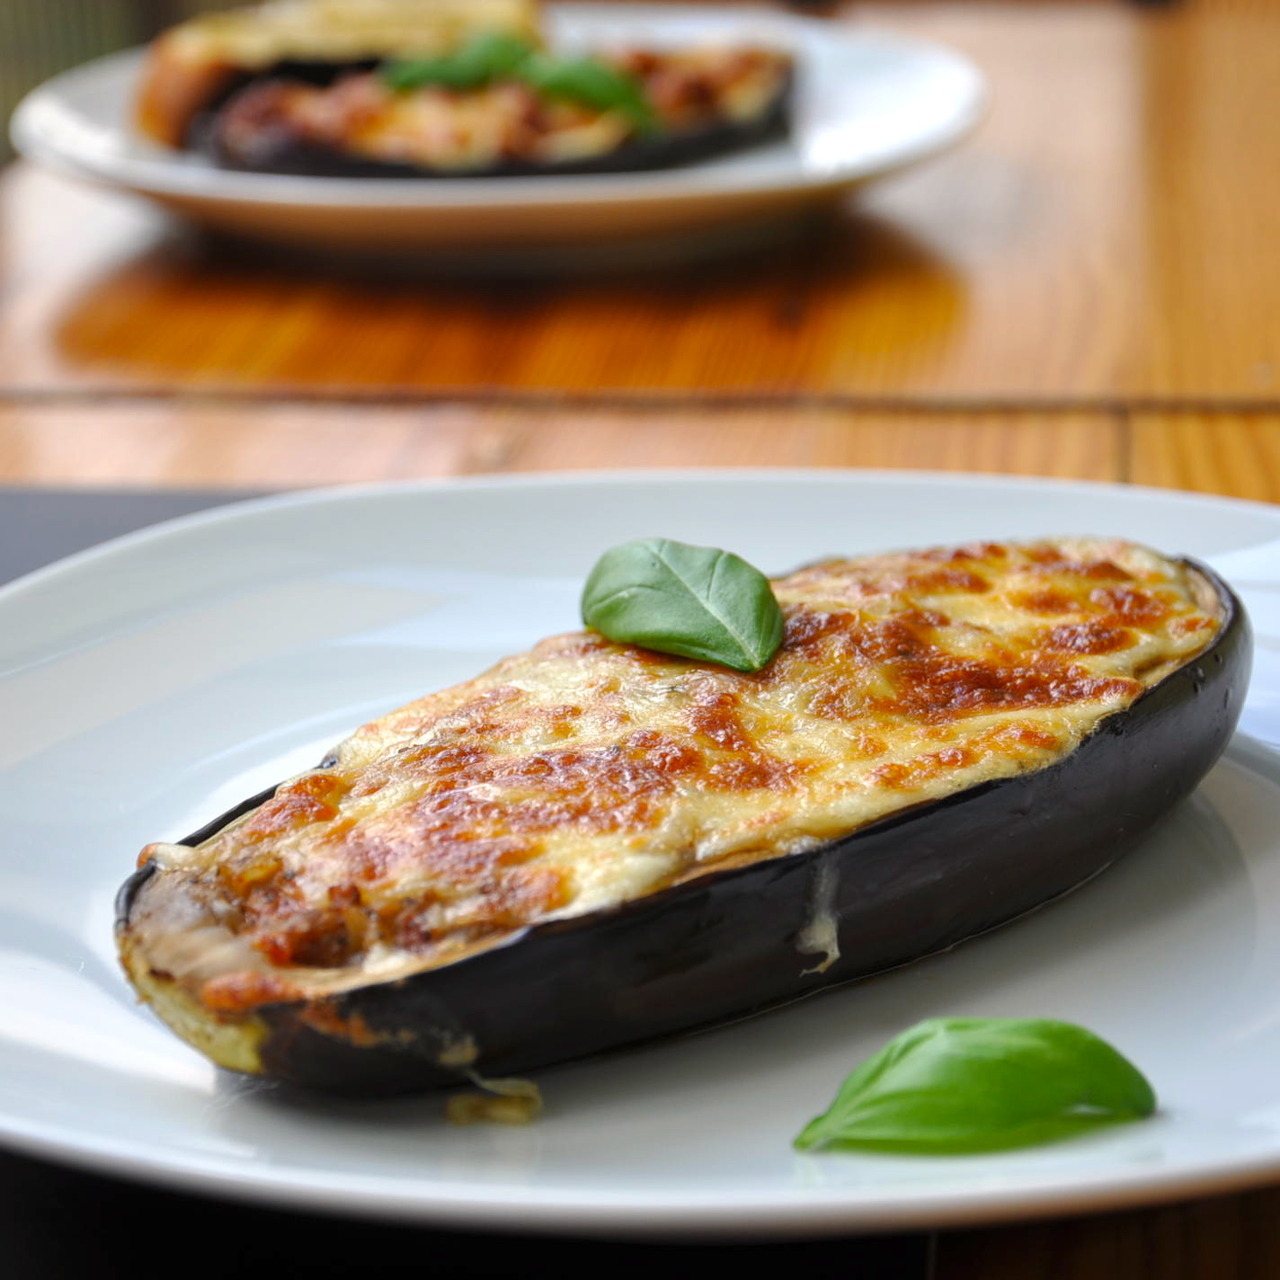 FoodShot #37: Eggplant stuffed with turkey Target: Lose Weight Preparation time: 50 minutes Serving: 483 g Calories: 381  Protein: 26,6 g Fat: 9,2 g Carbohydrates: 58 g Get The Recipe Visit Daybite.com to get the right portion size tailored to you.